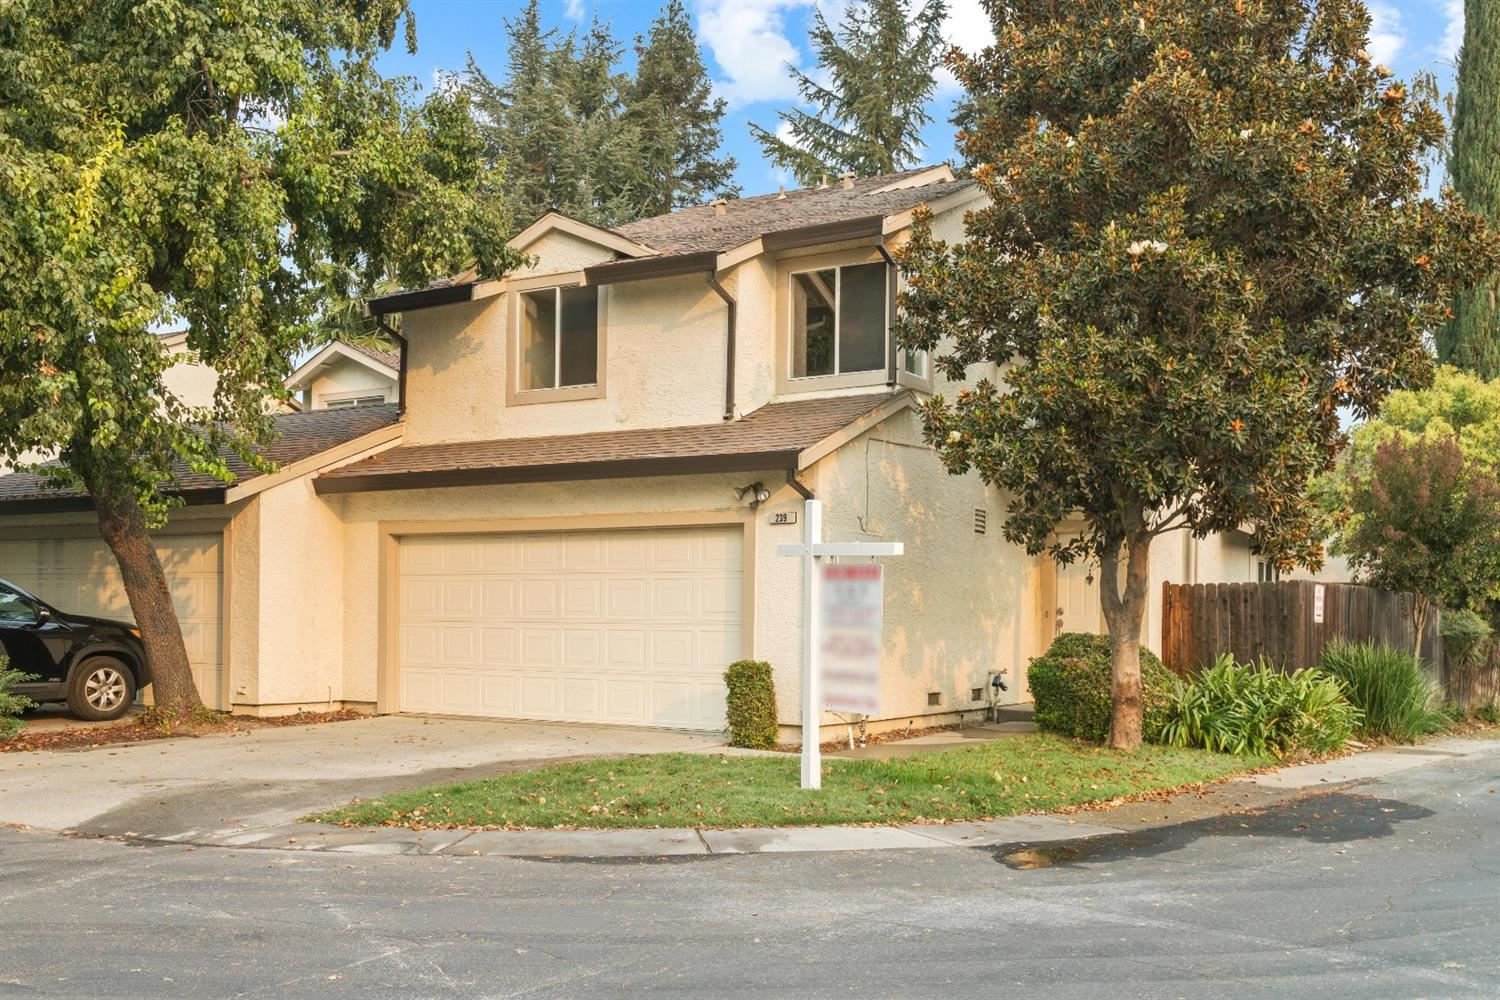 Photo of 239 Touchstone Place, West Sacramento, CA 95691 (MLS # 20058336)